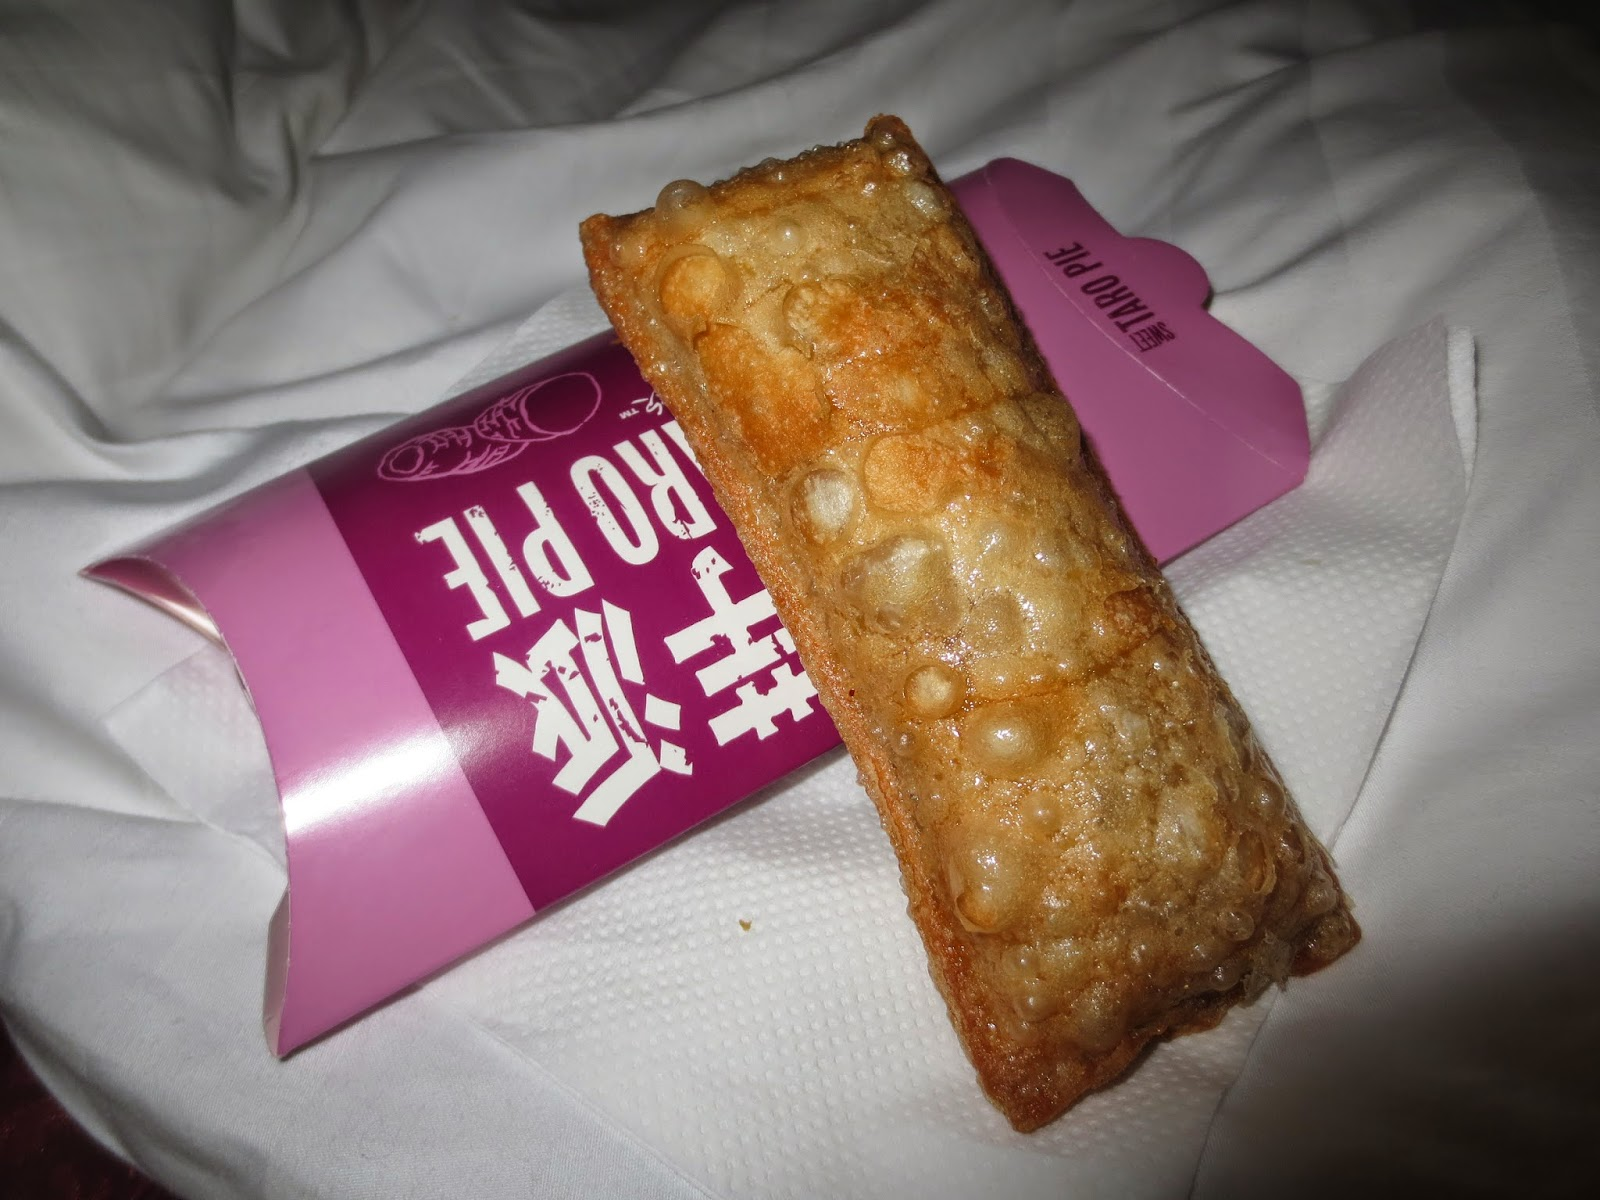 McDonald's Taro Pie